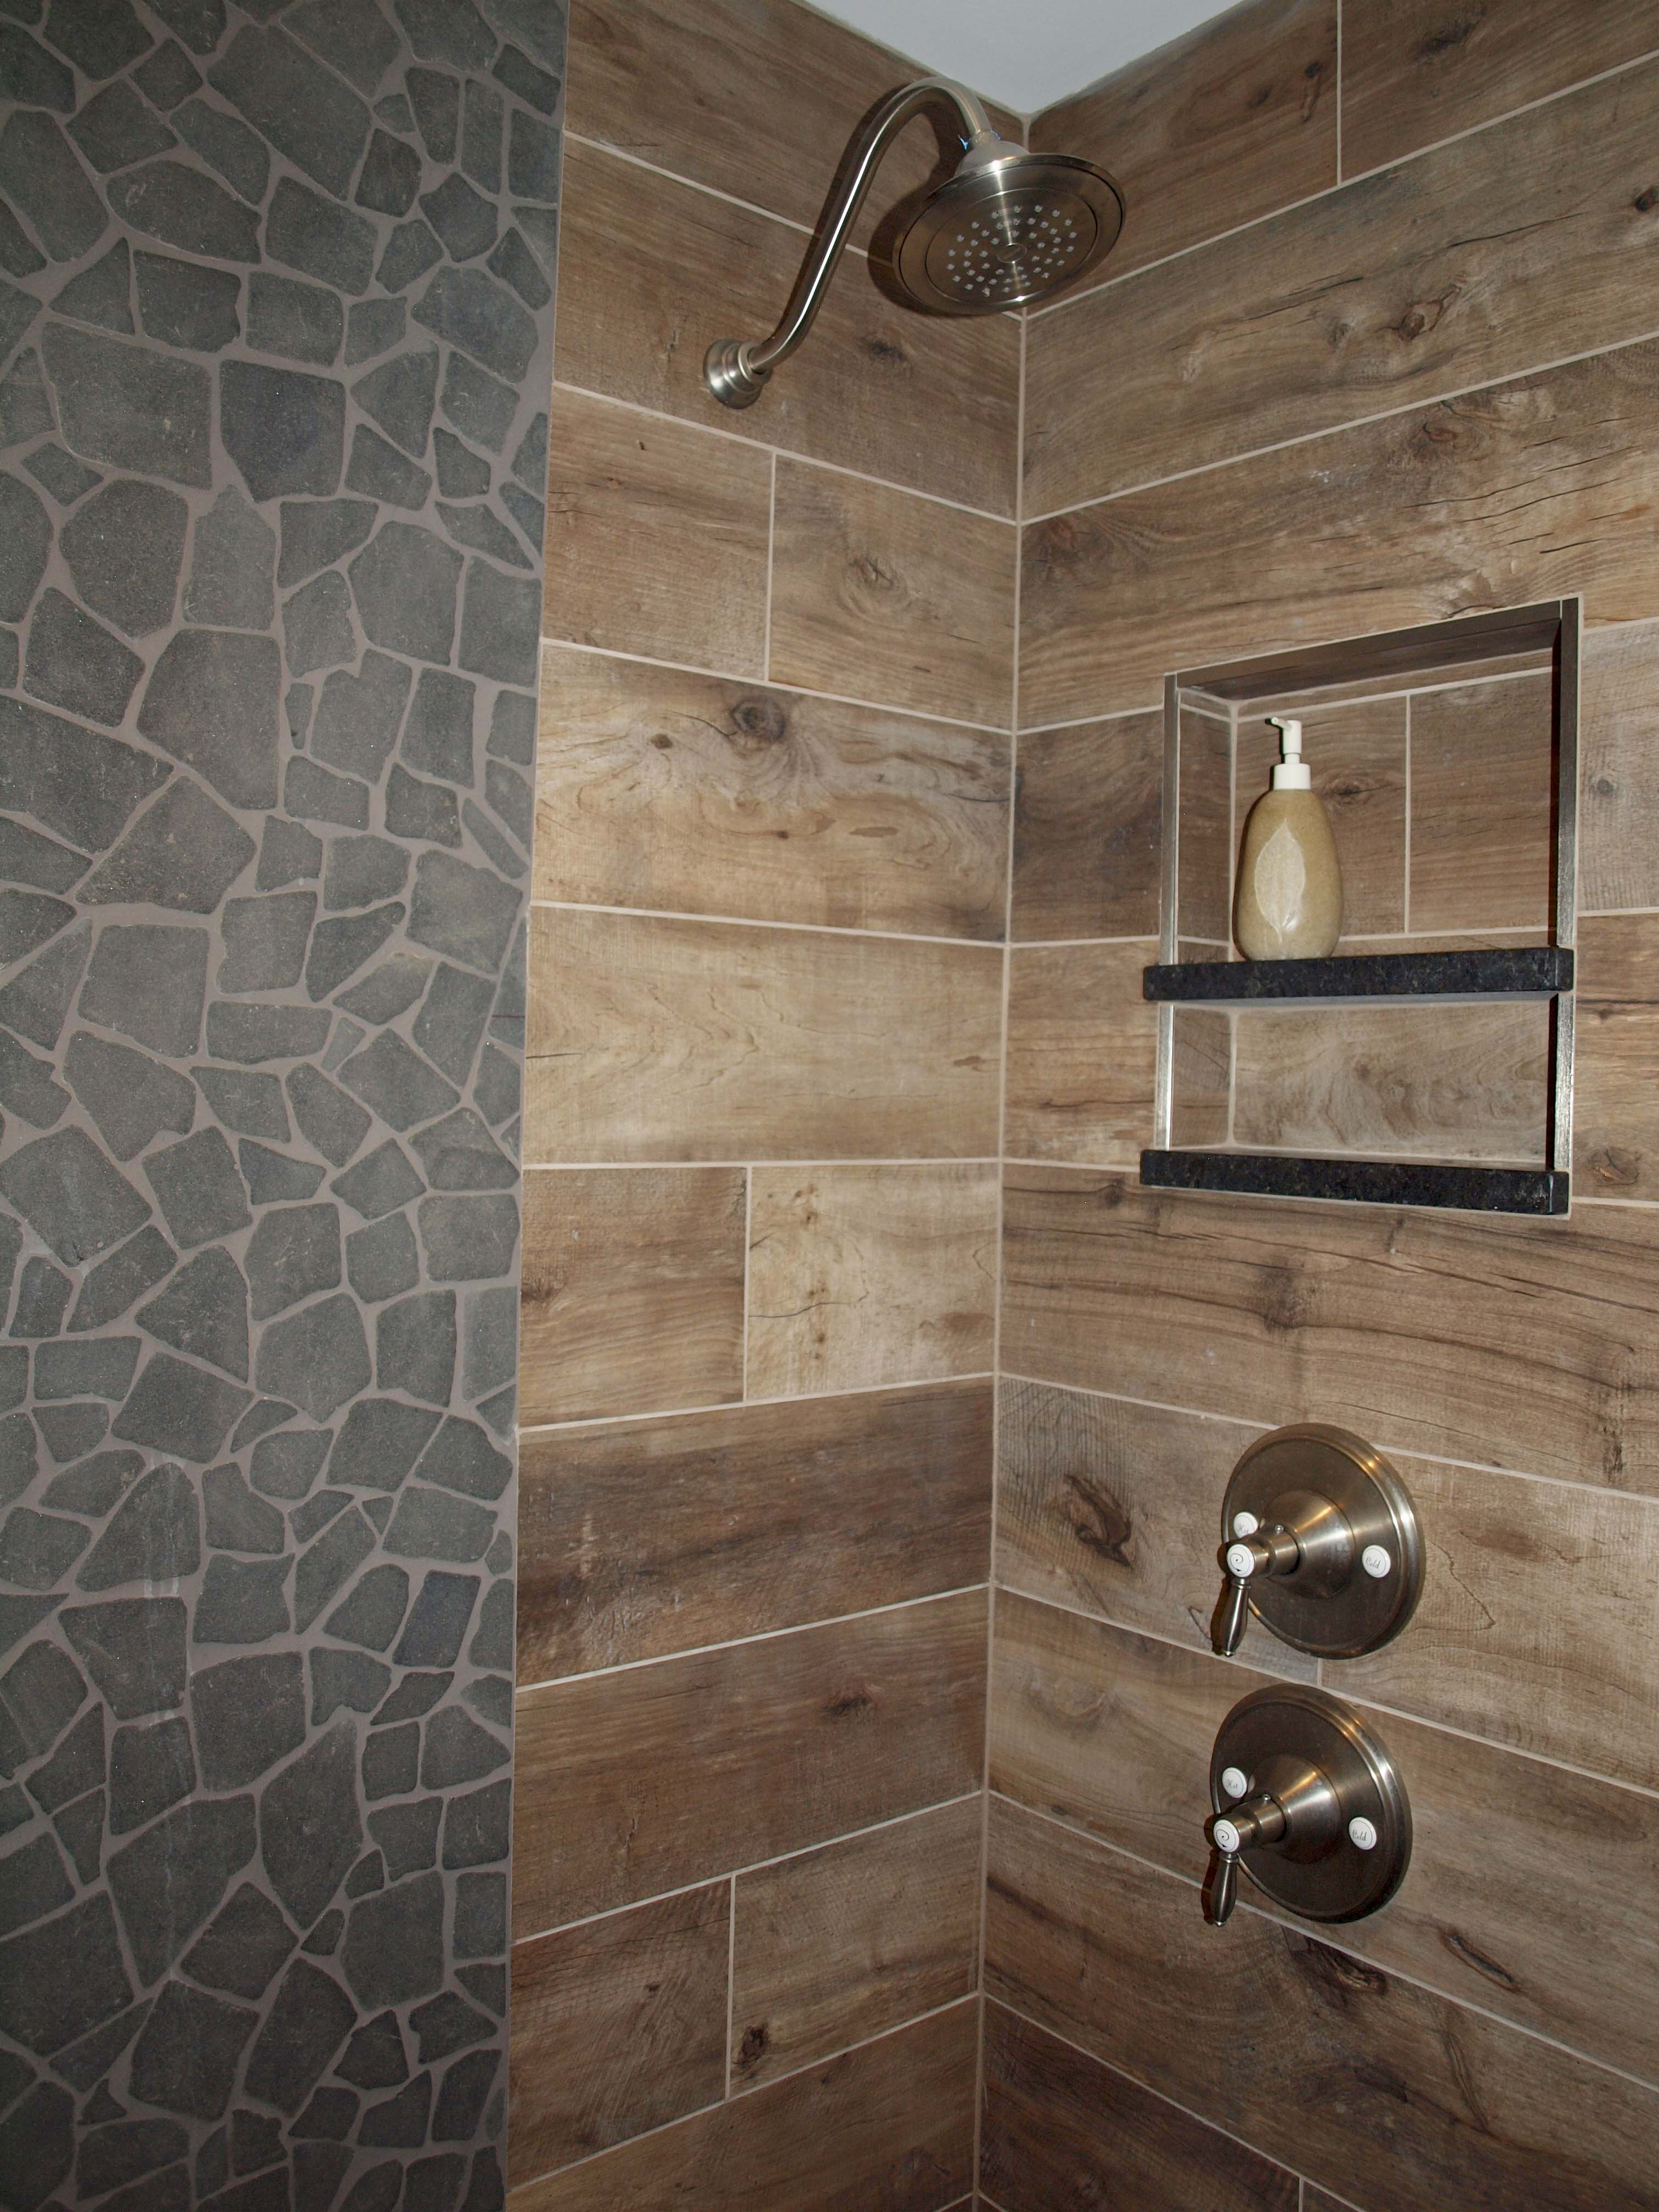 wood look tile on walls normandy remodeling. Black Bedroom Furniture Sets. Home Design Ideas